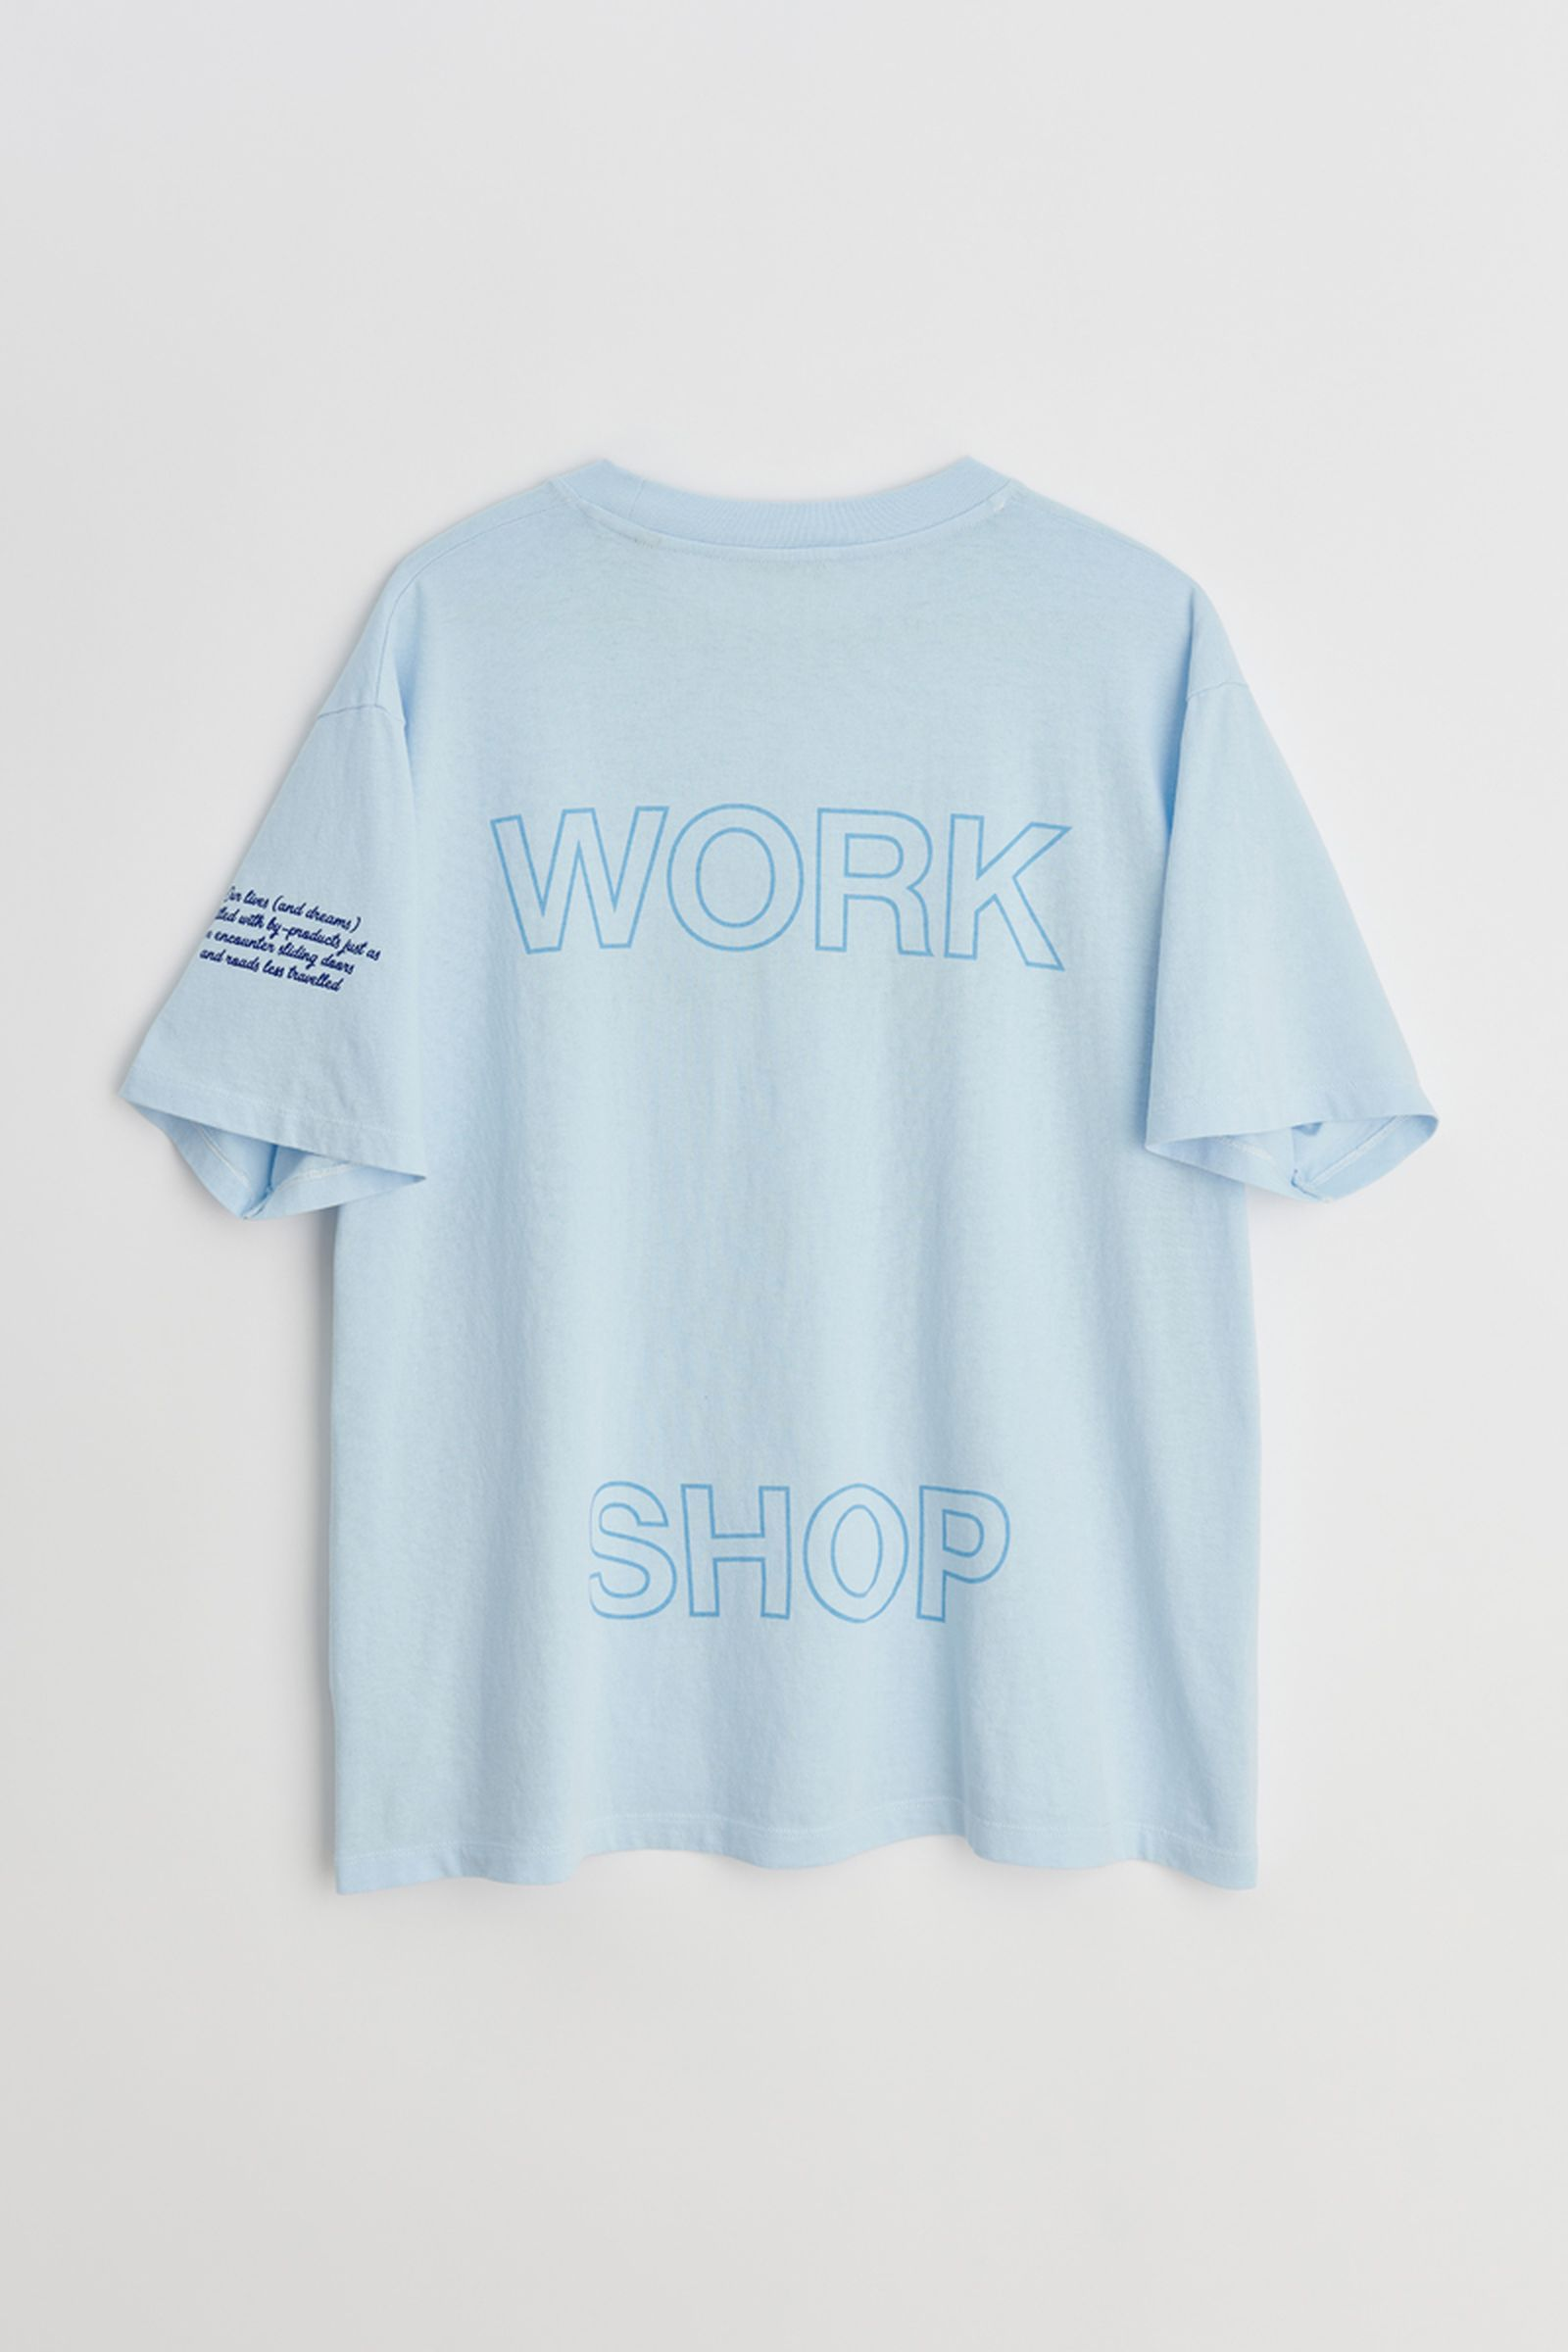 our legacy-work-shop-byredo-byproduct- (11)